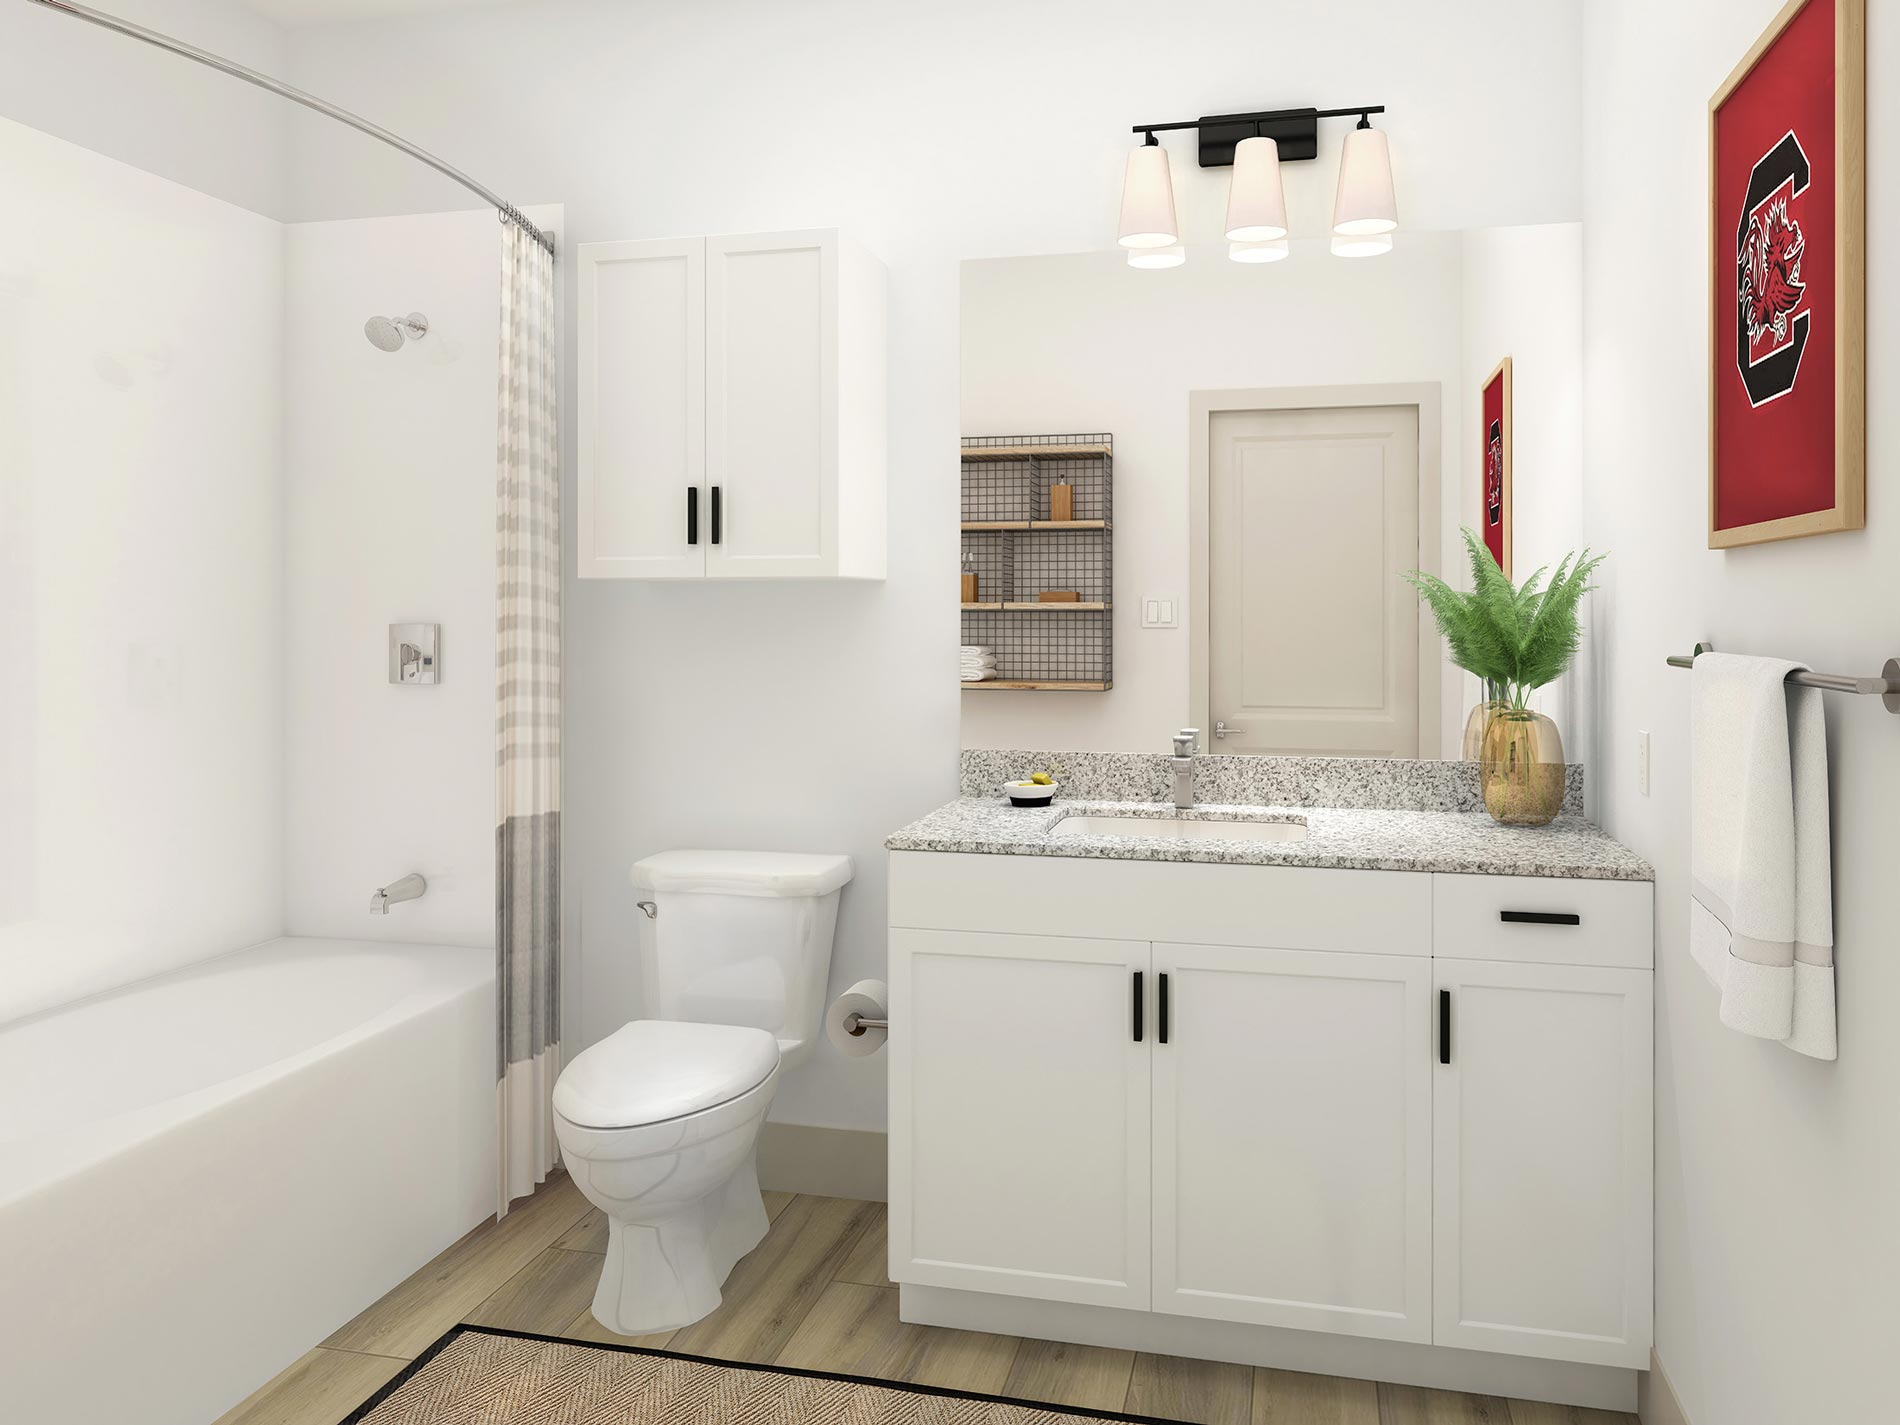 R09-UNIT-D2-BATHROOM_COLUMBIA_LR_05.22.20